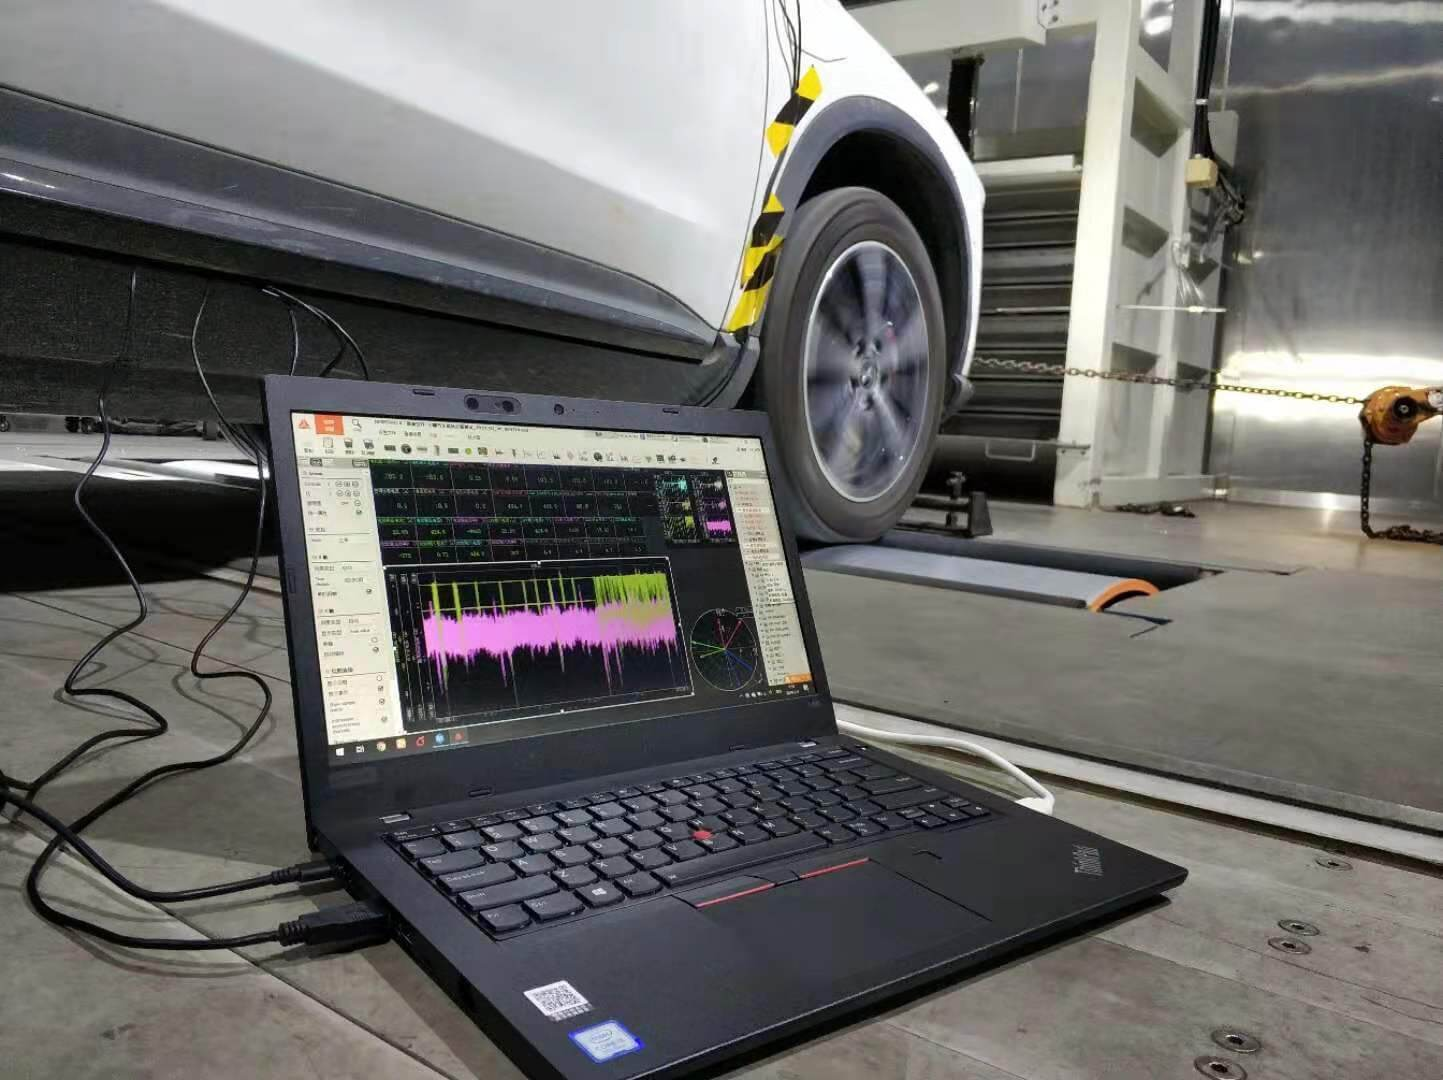 Measurement setup in a vehicle on a dynamometer